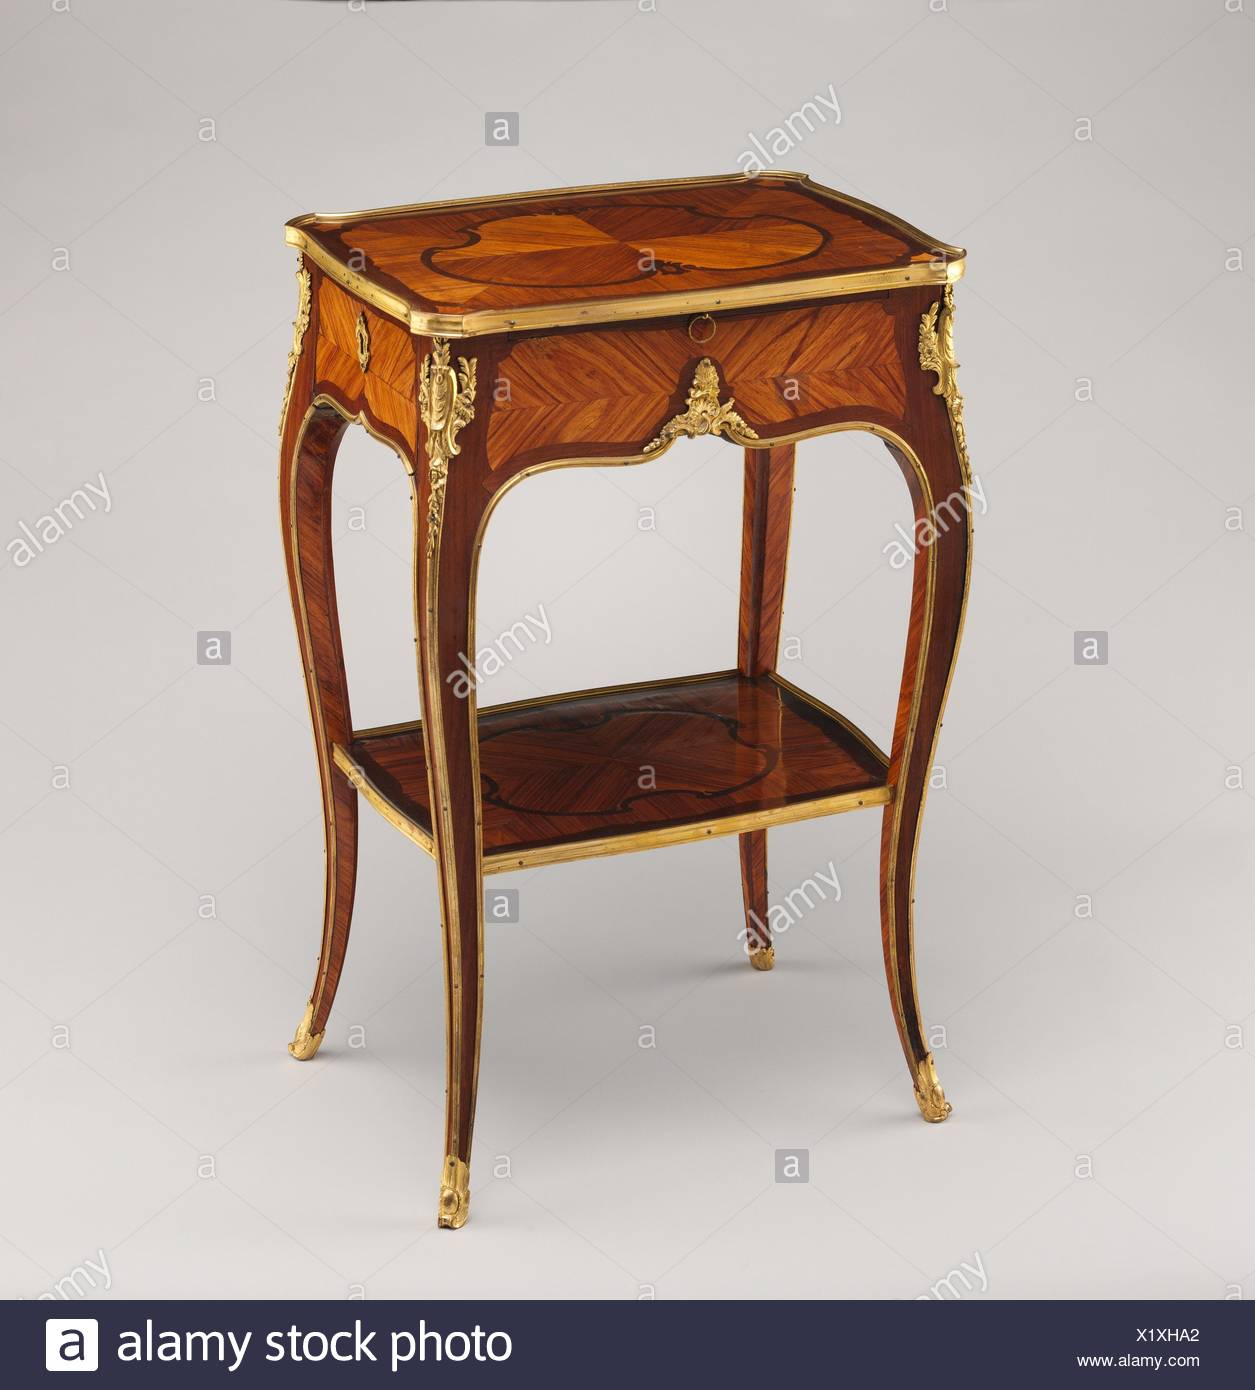 Small Oblong Table. Maker: Antoine Mathieu Criaerd (French, 1724 1787